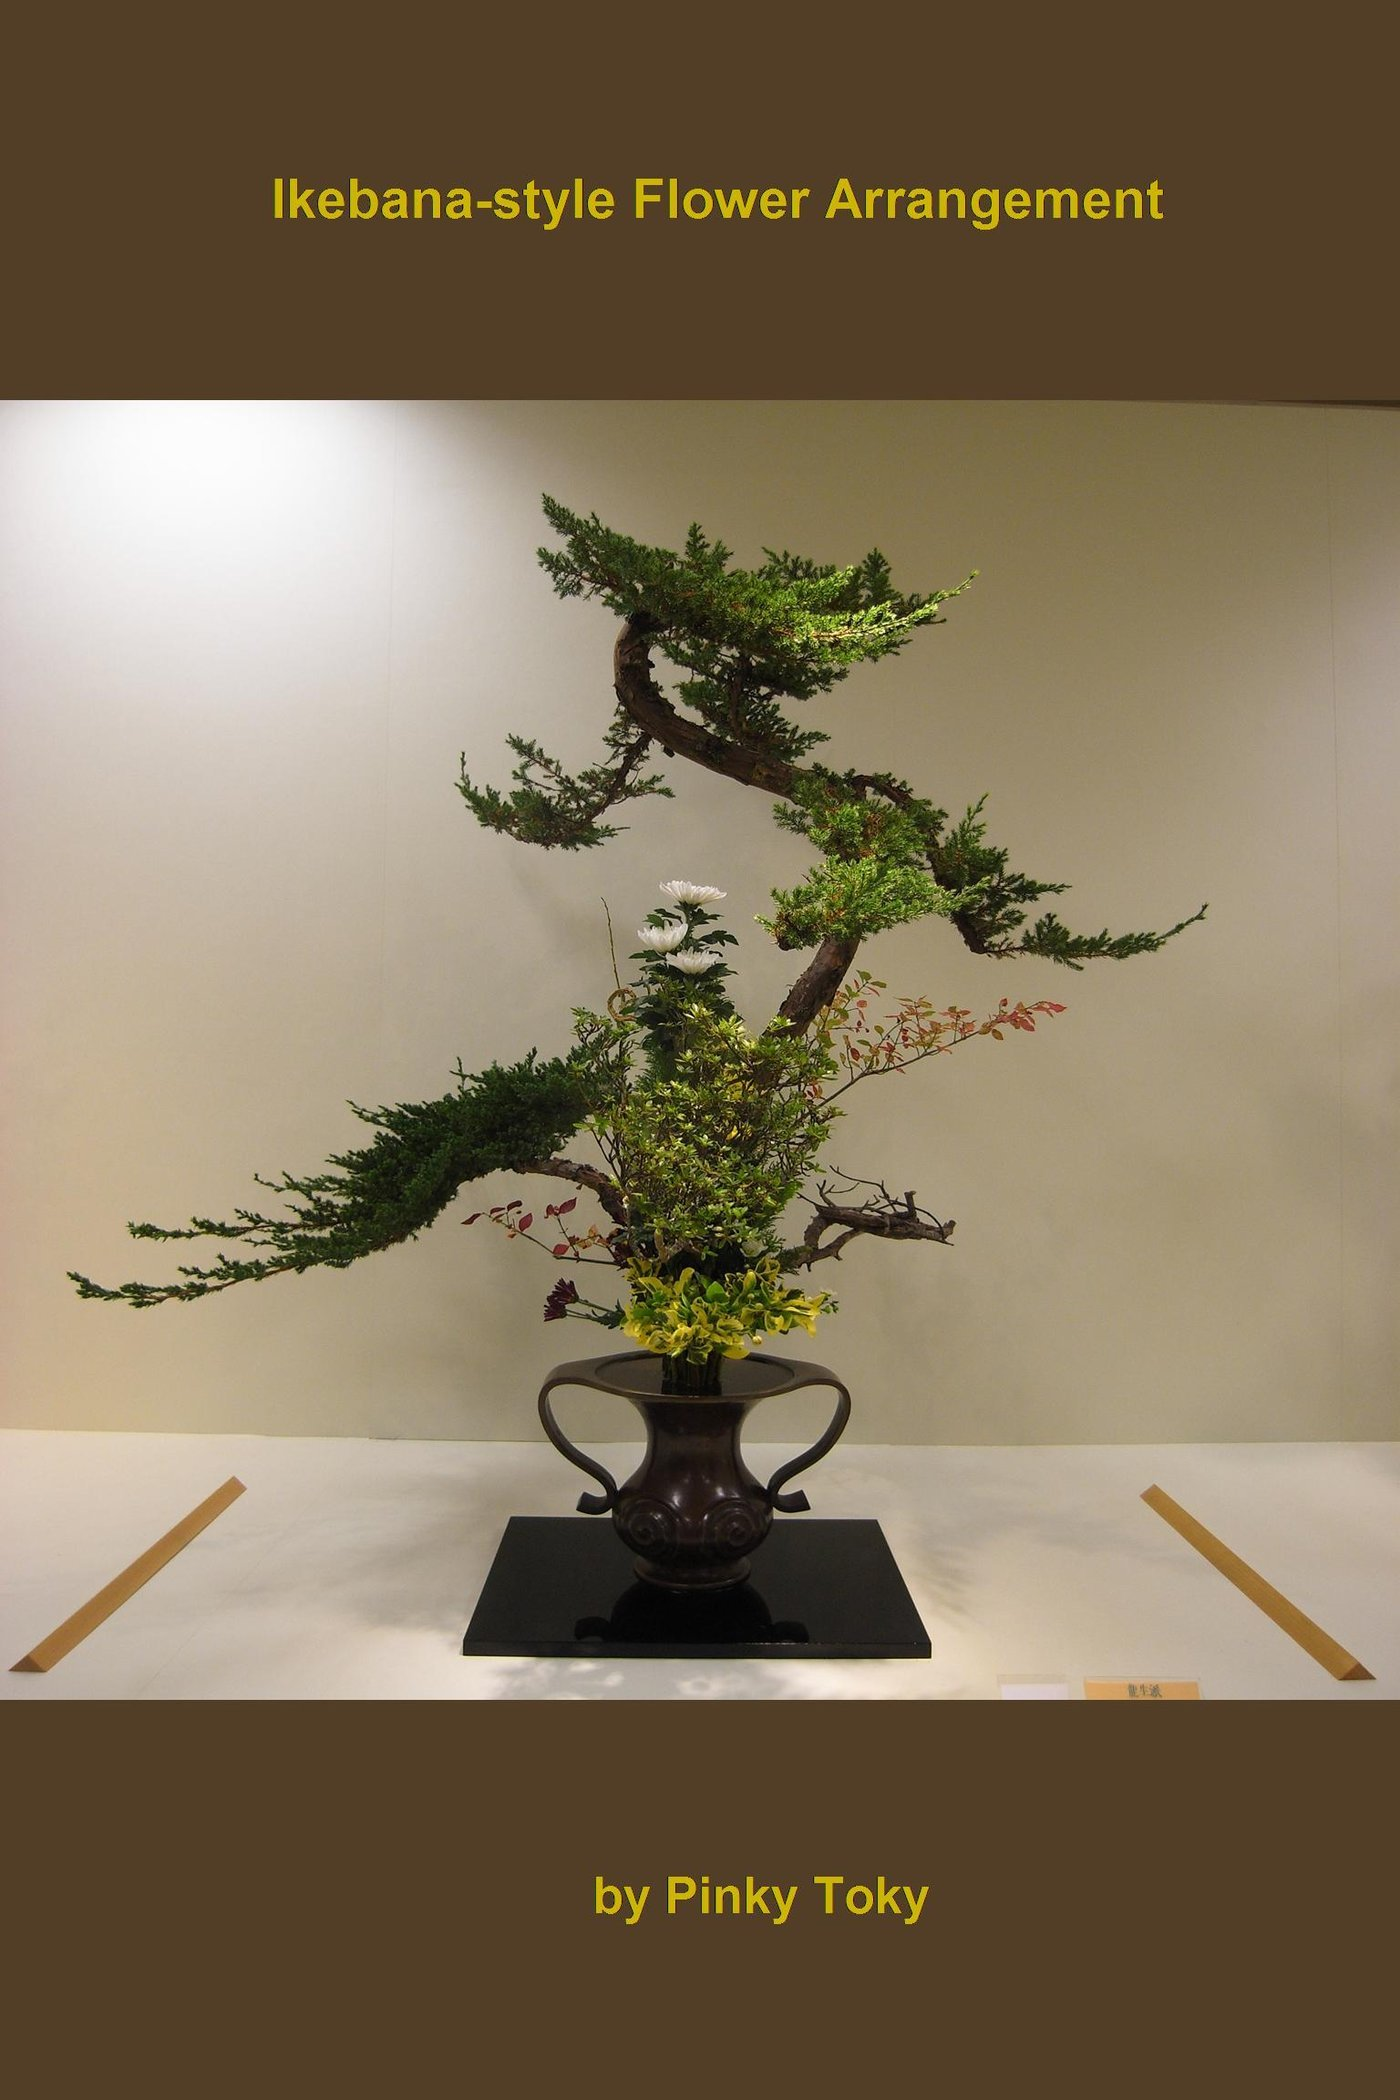 Ikebana-style Flower Arrangement